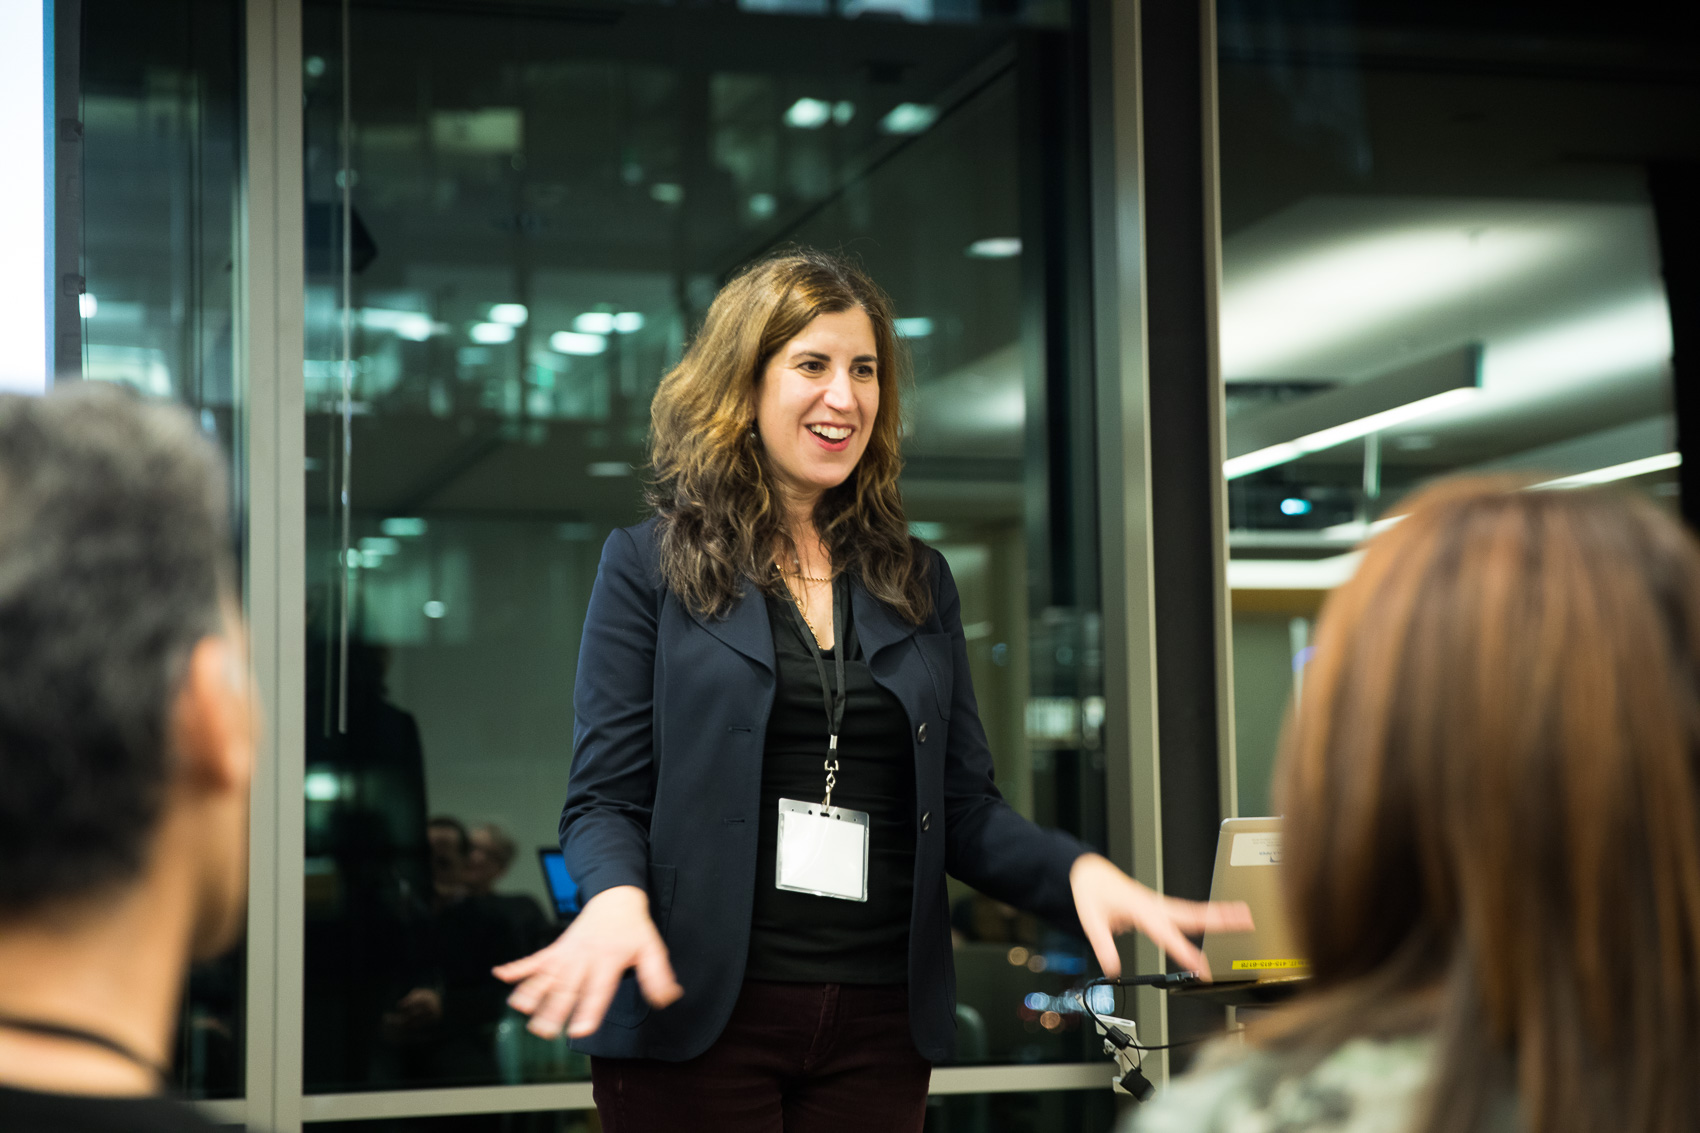 Duke Corporate Education - Marti Grimminck has become a Duke Corporate Education Speaker. The launch of the partnership took place in a fantastic night hosted by DLA Piper LLP (SF). Marti lead the discussion on the Future Workforce and it's impact on companies today.